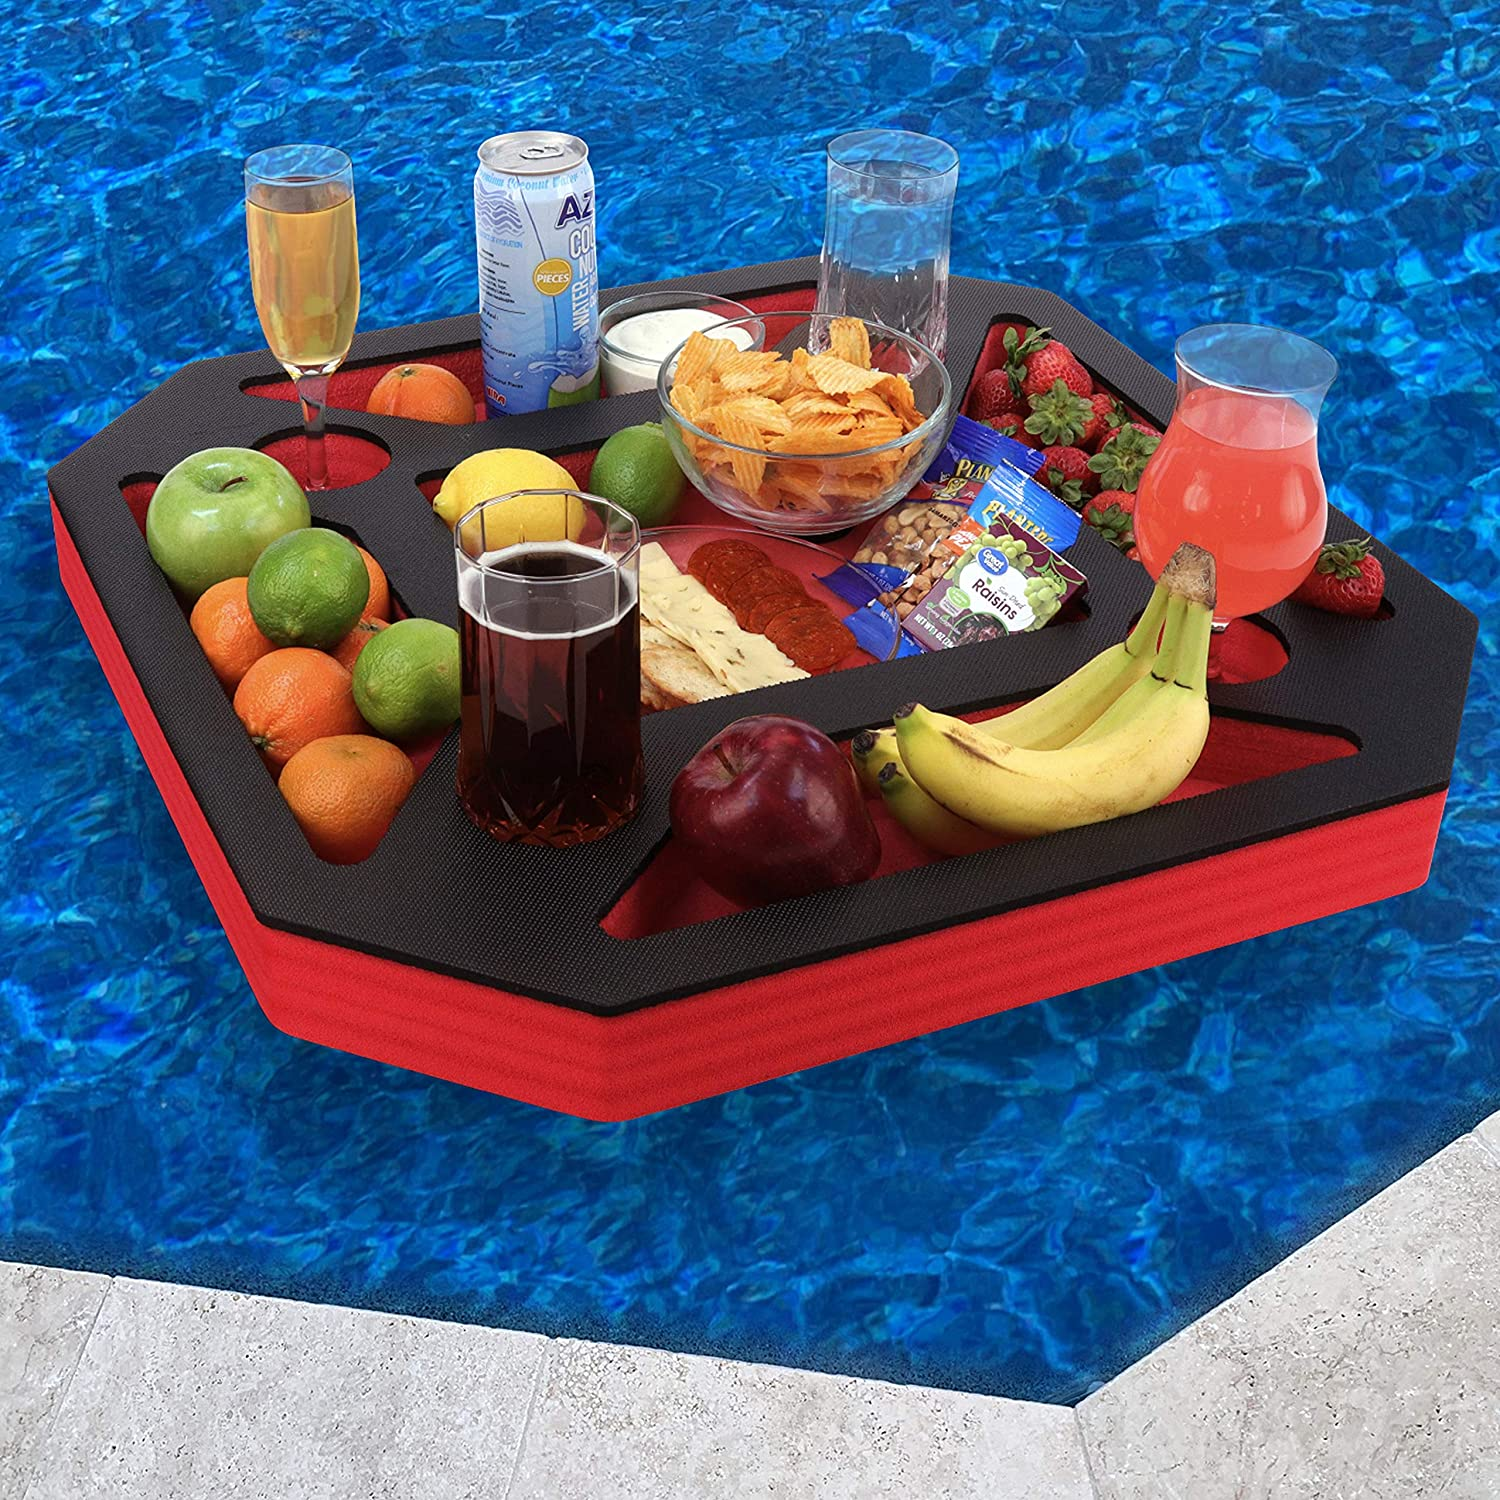 Polar Whale Floating Spa Hot Tub Bar Drink and Food Table Red and Black Refreshment Tray for Pool or Beach Party Float Lounge Durable UV Resistant